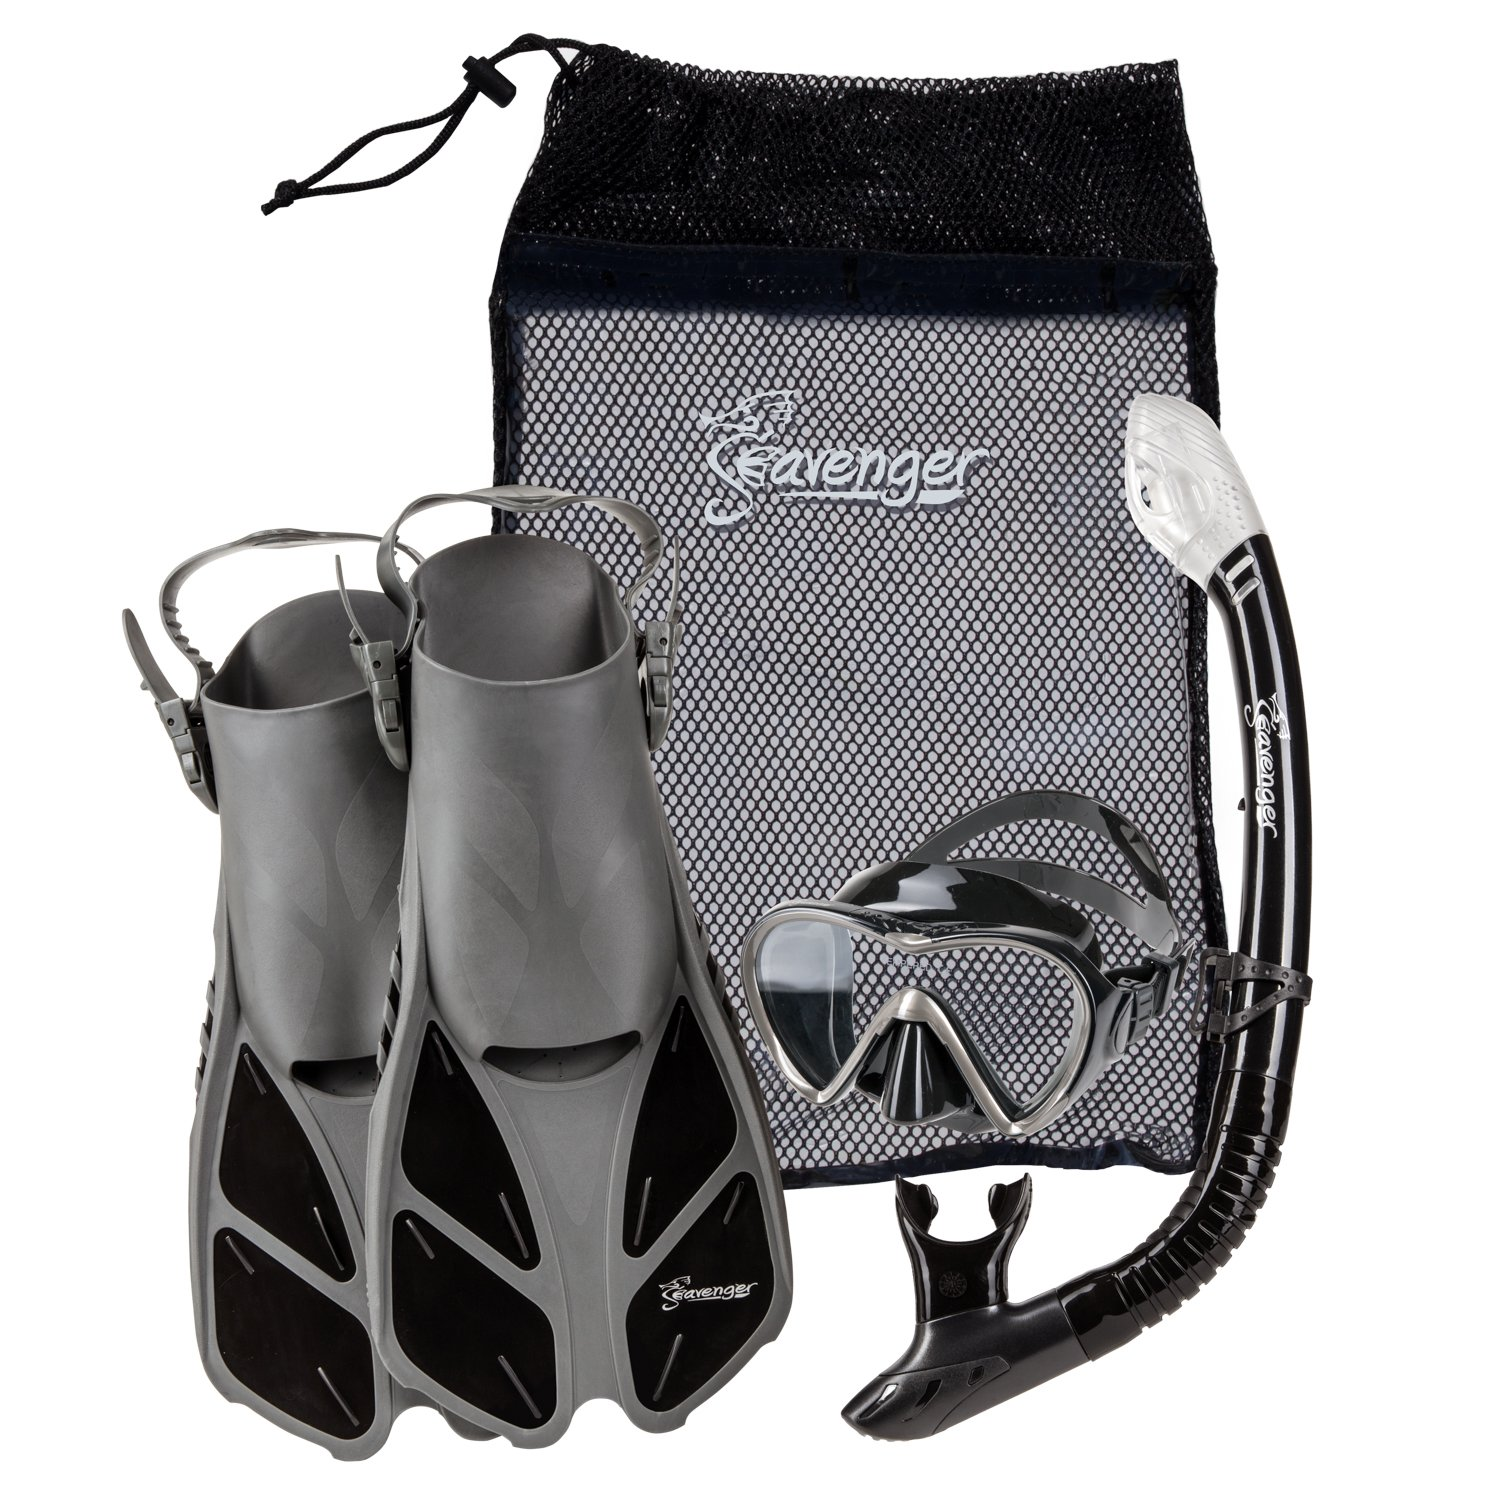 Seavenger Diving Dry Top Snorkel Set with Trek Fin, Single Lens Mask and Gear Bag, L/XL - Size 9 to 13, Gray/Black Silicon by Seavenger